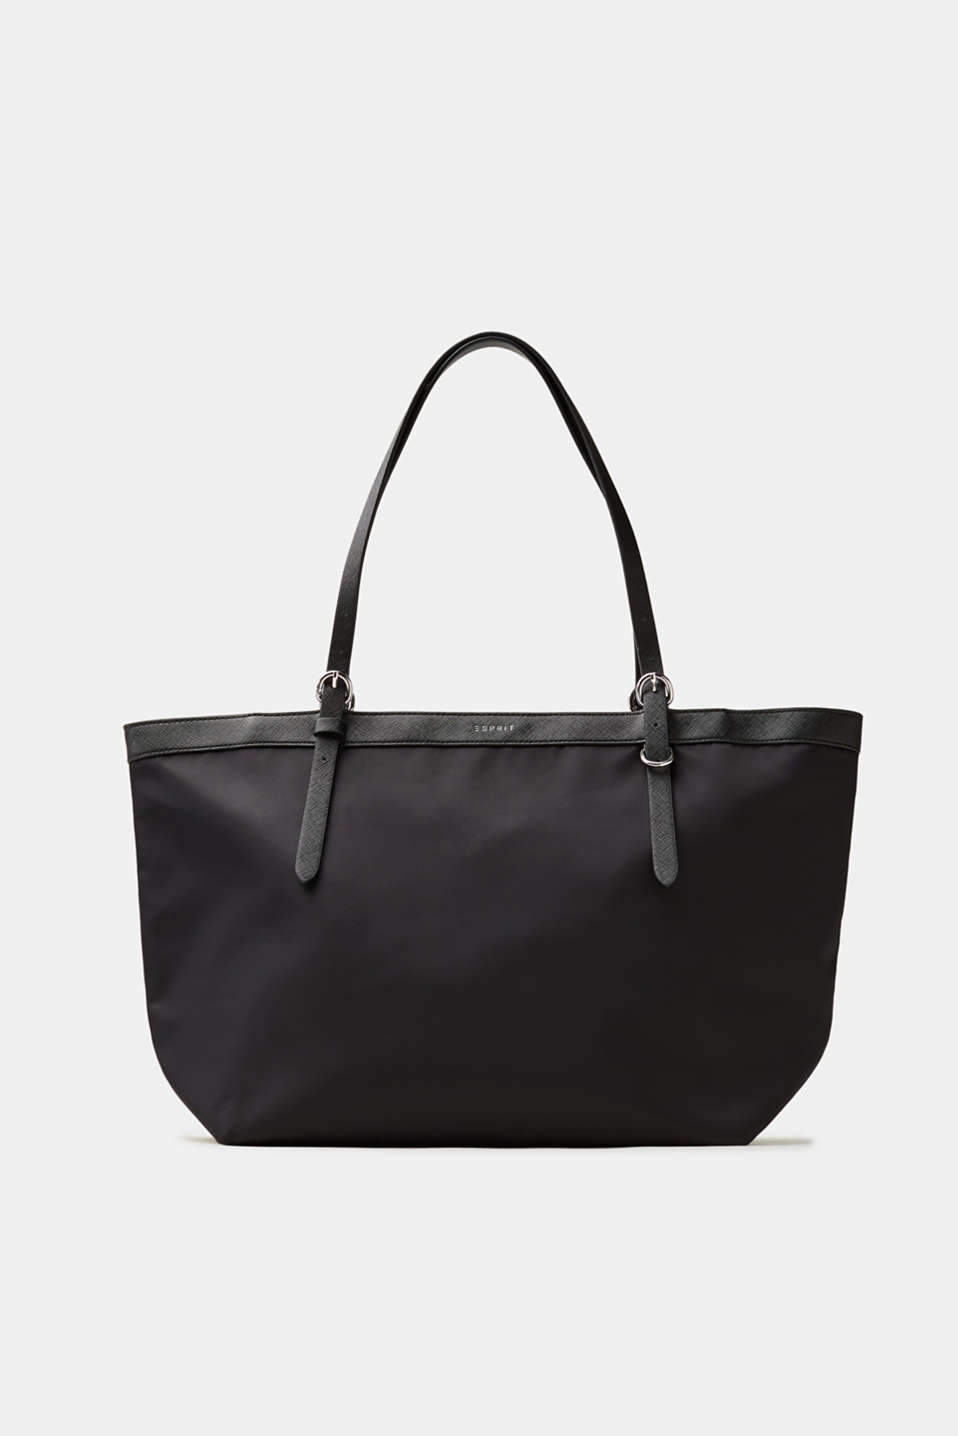 This lightweight shopper in textured faux leather is the perfect accessory for any occasion.